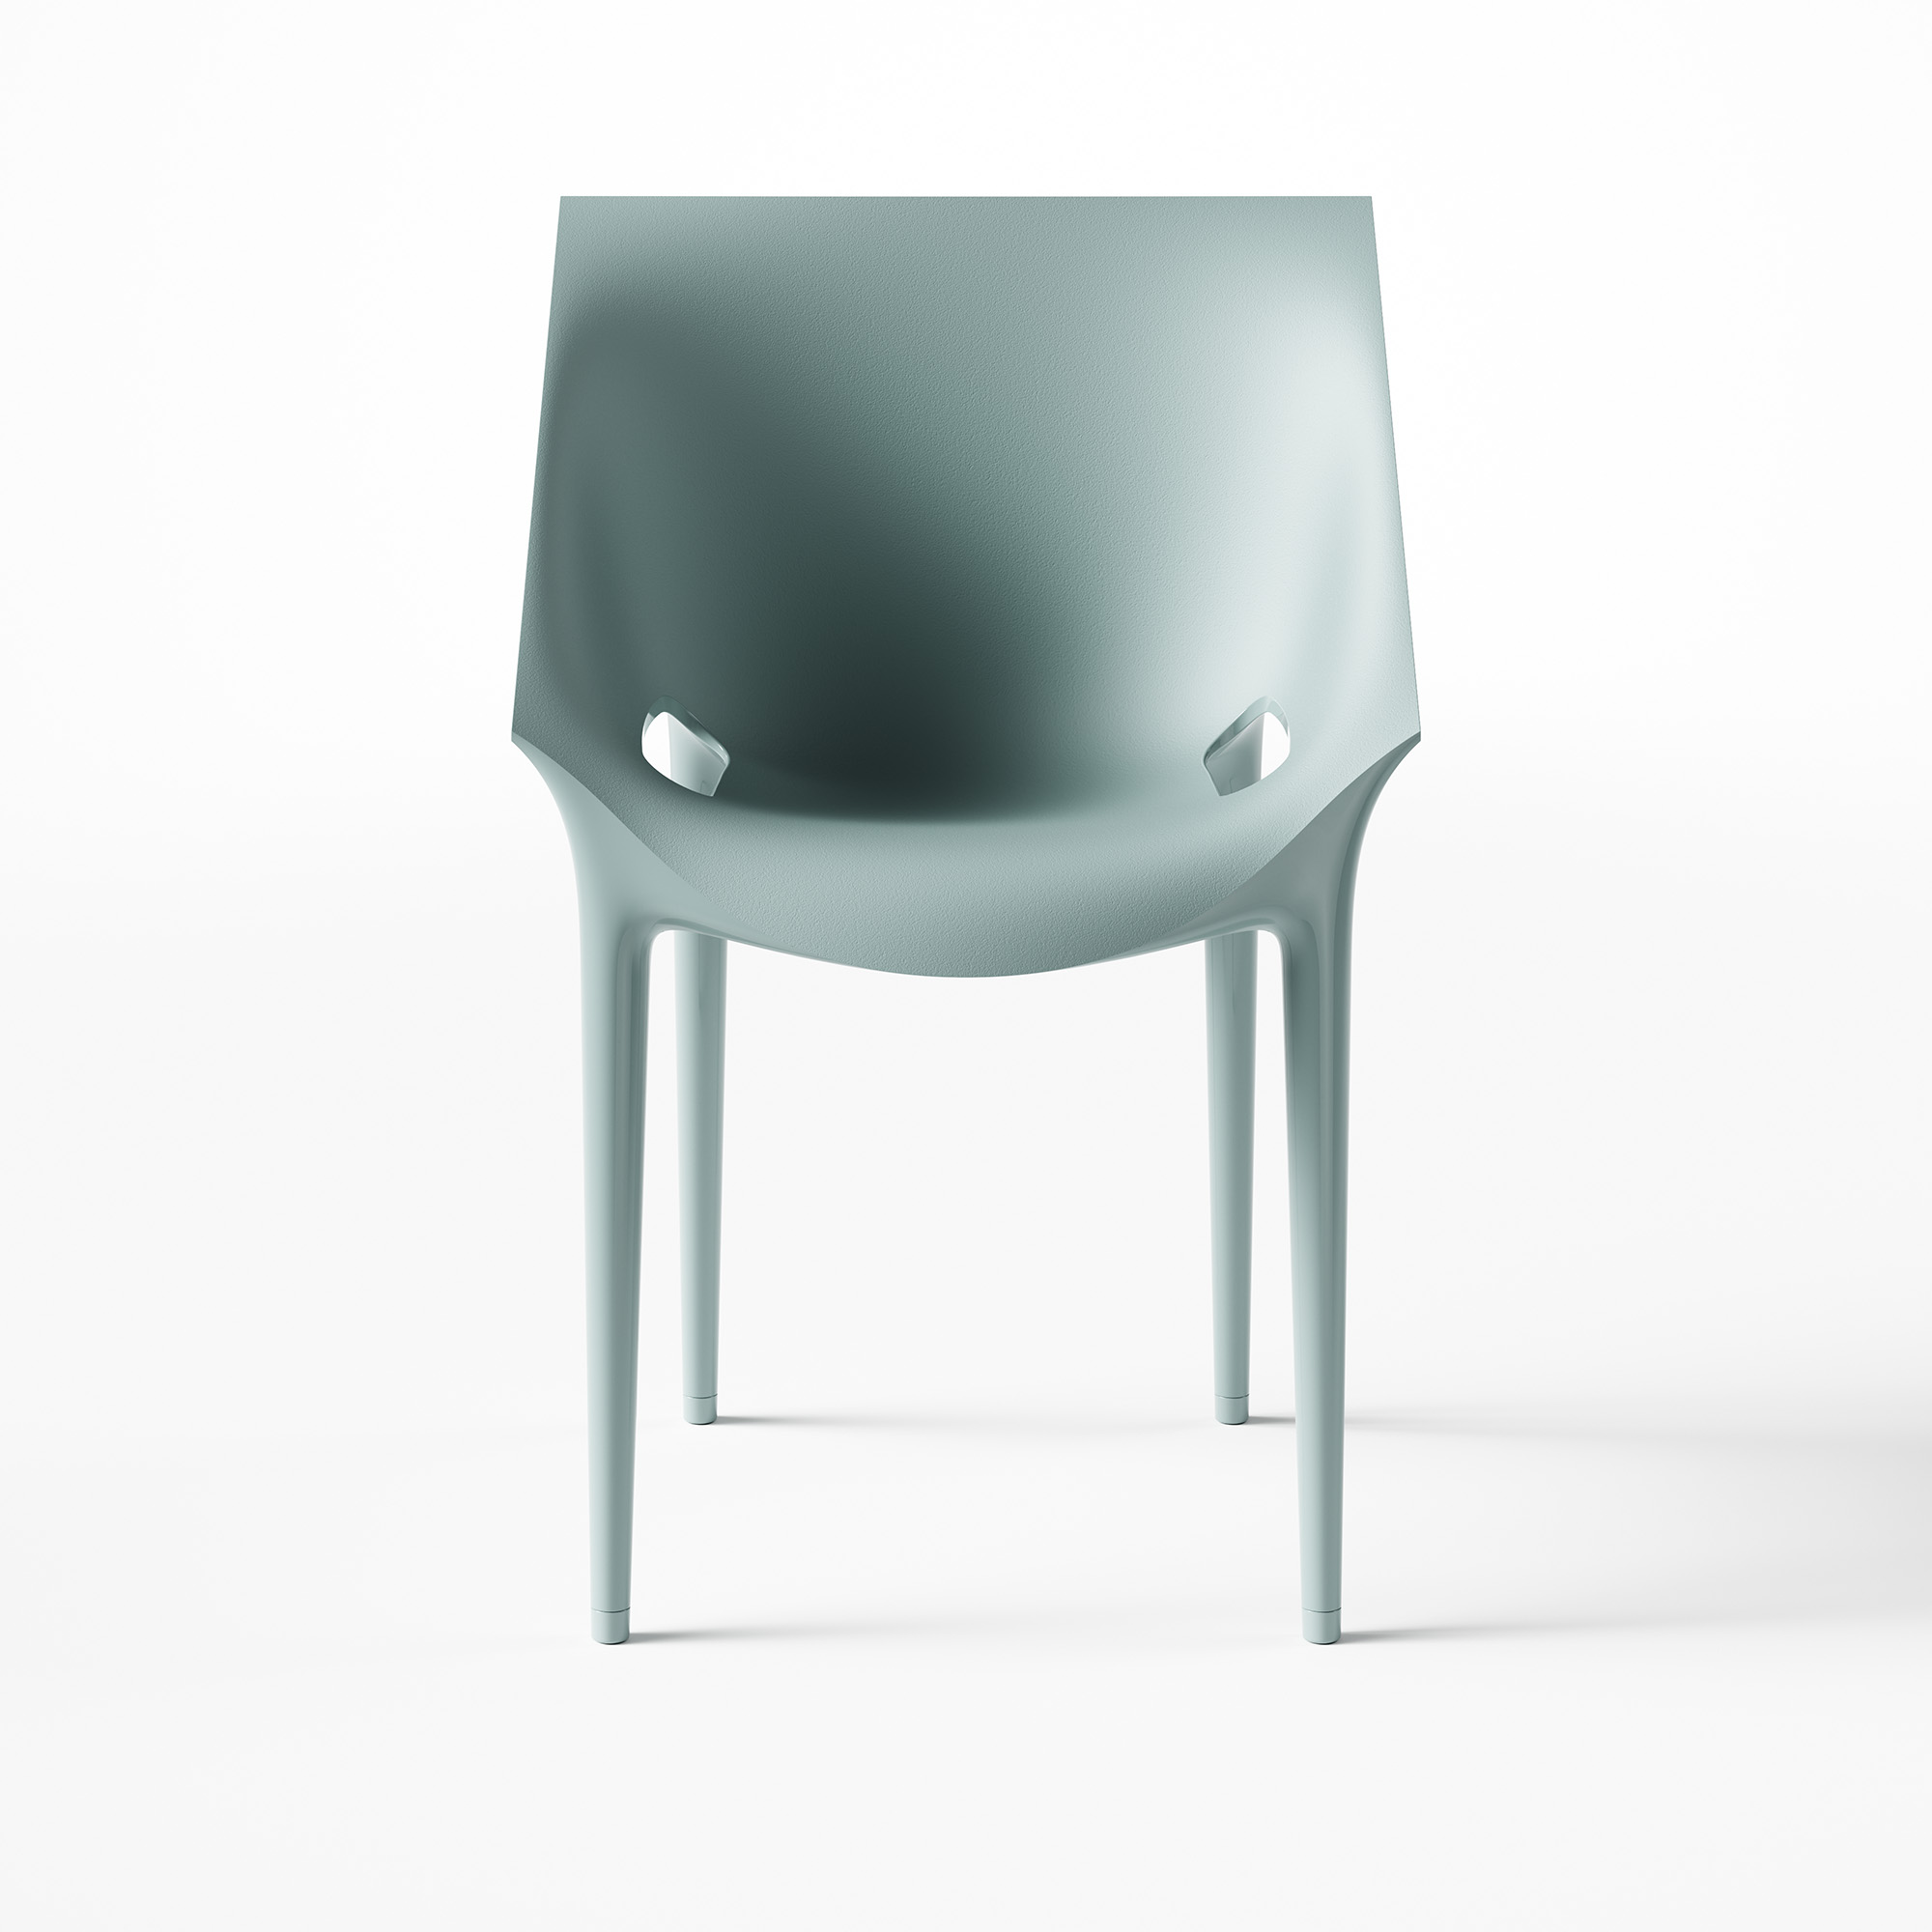 Kartell 'Dr Yes' Chair CAD Sculpting Exercise